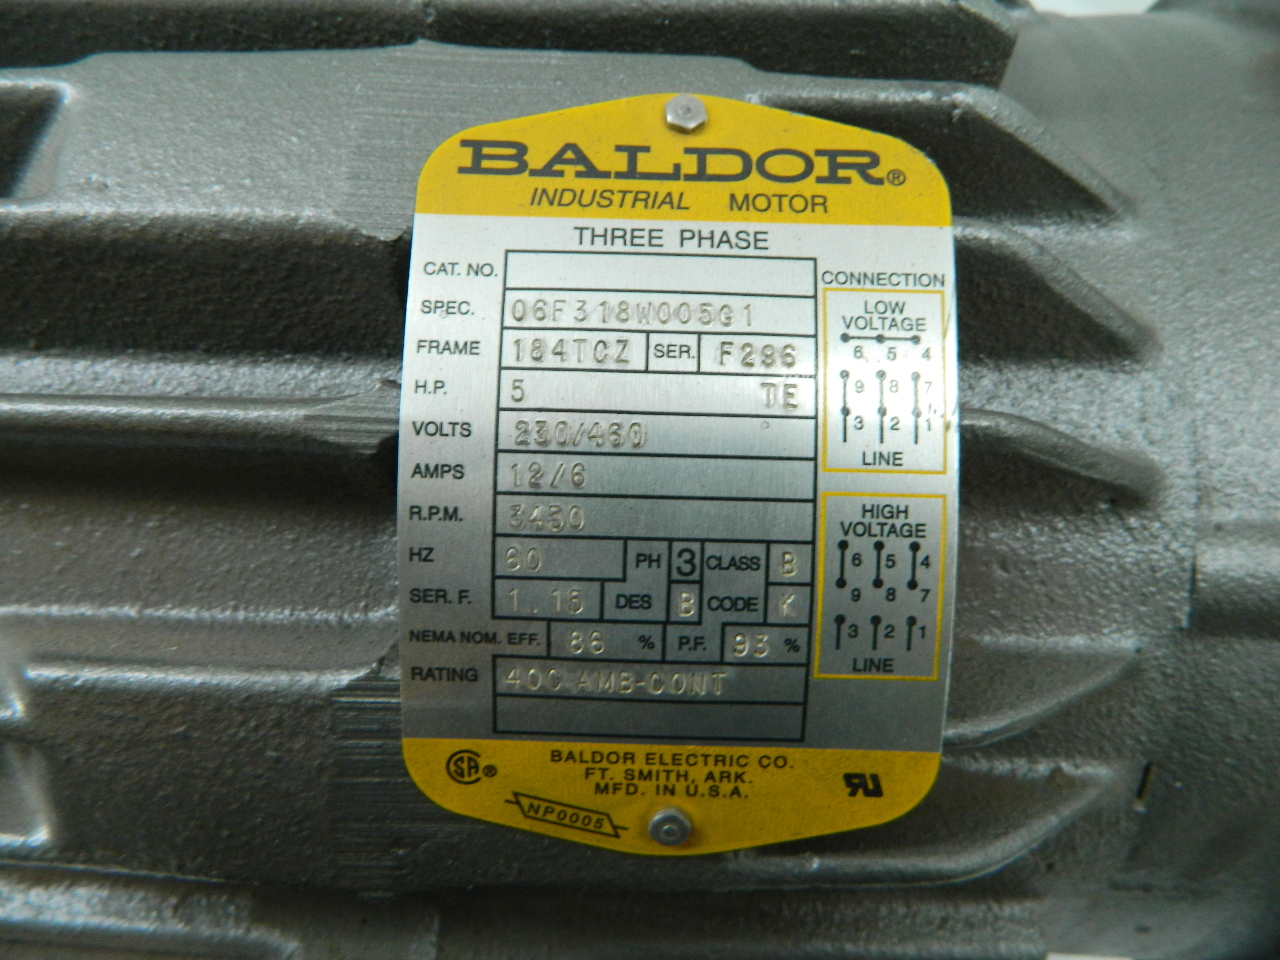 ip5524 baldor 5hp electric motor 3450 rpm 184tcz frame te 208 460vac 3 phase 3?resized680%2C510 baldor 10 hp electric motor wiring diagram efcaviation com baldor motors wiring diagram 3 phase at readyjetset.co